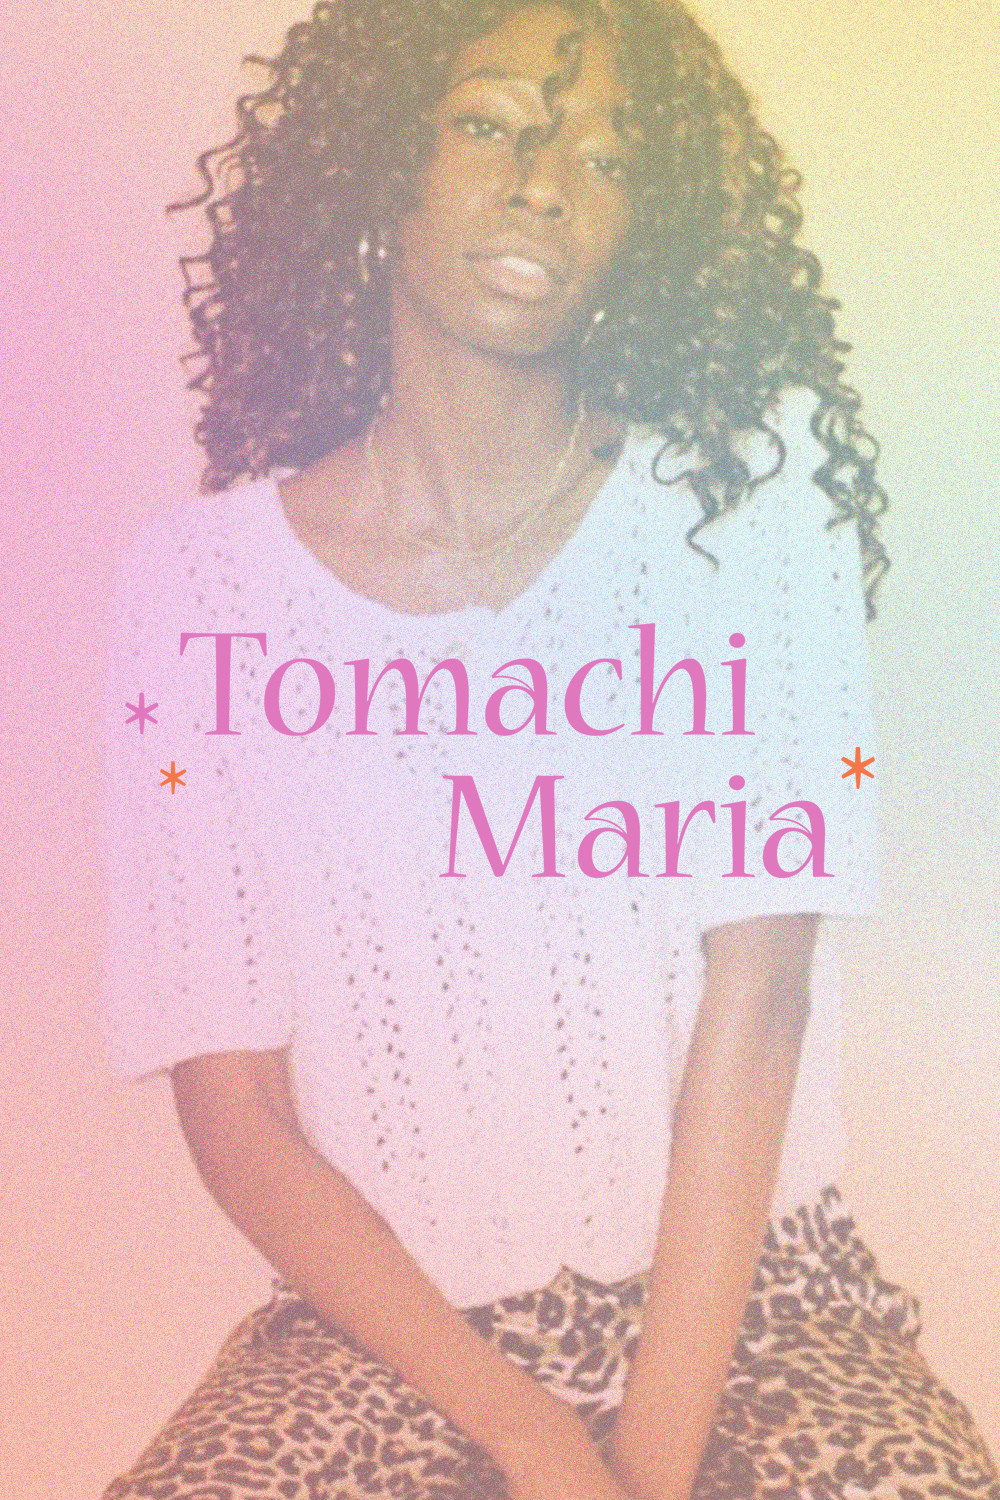 Showcasing the Tomachi Maria logo. The logo is display over an image of a young woman, there is a colourful gradient, and grain affect applied to her image.